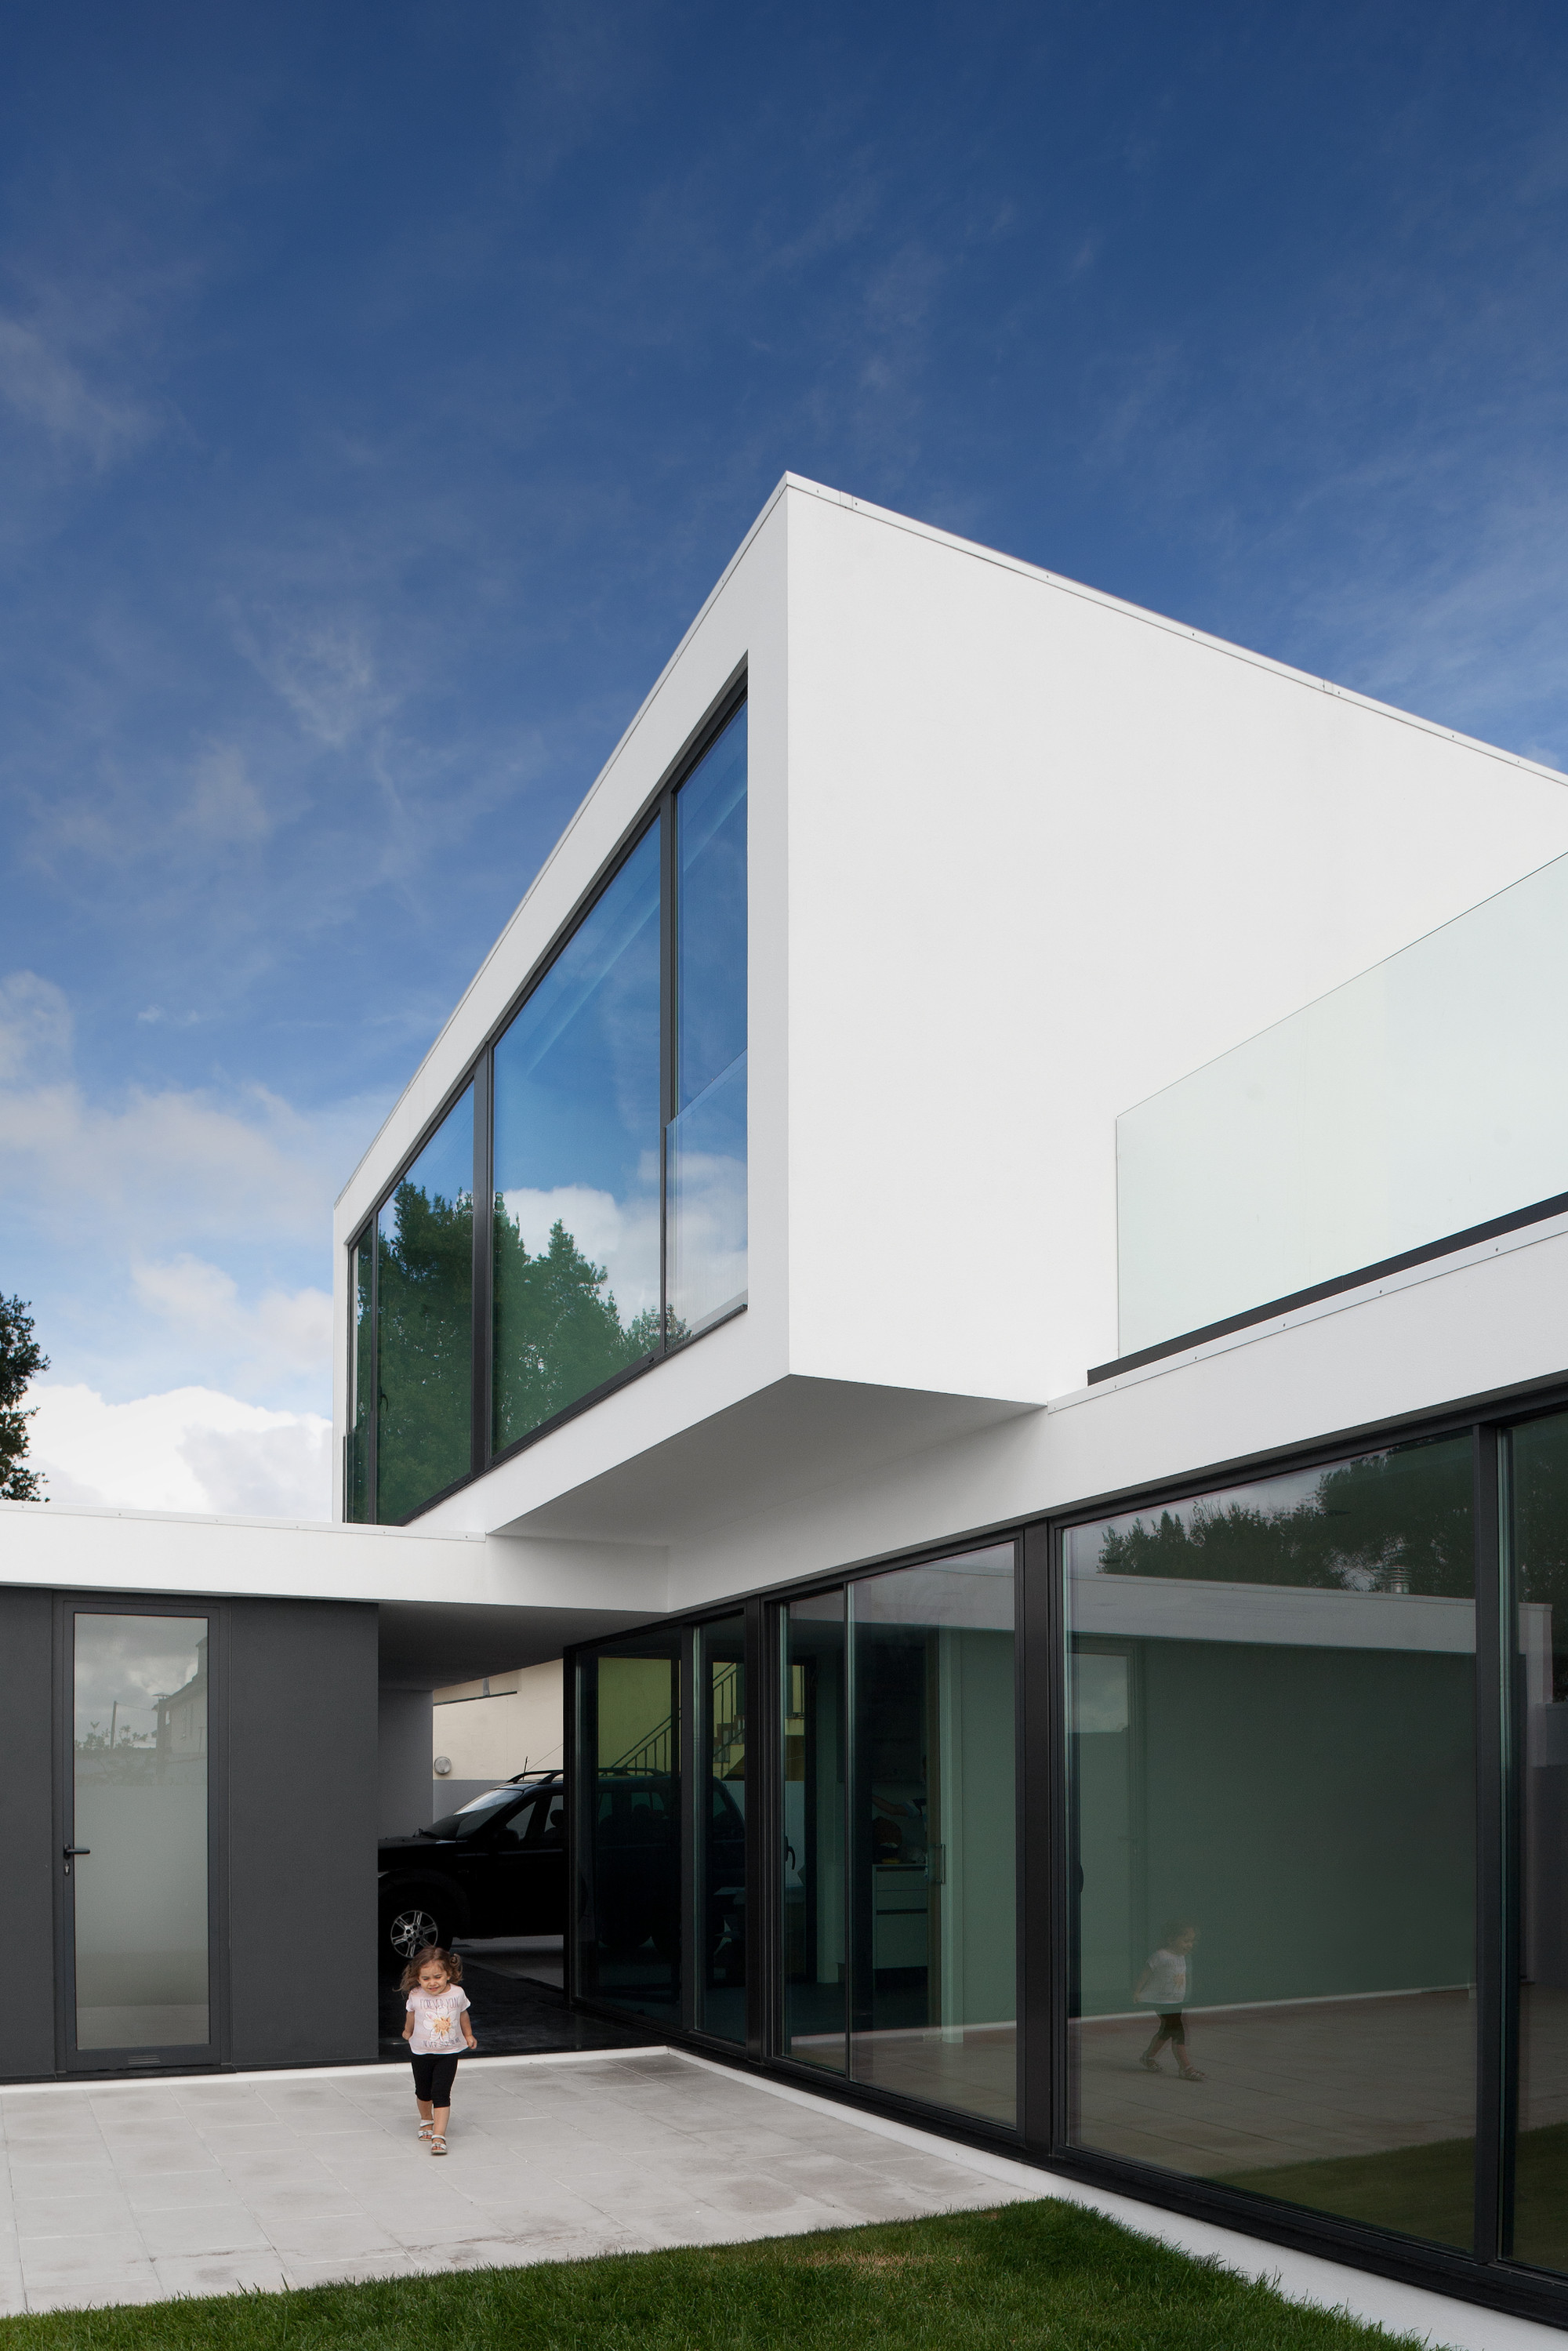 Exterior Design Of A House Images